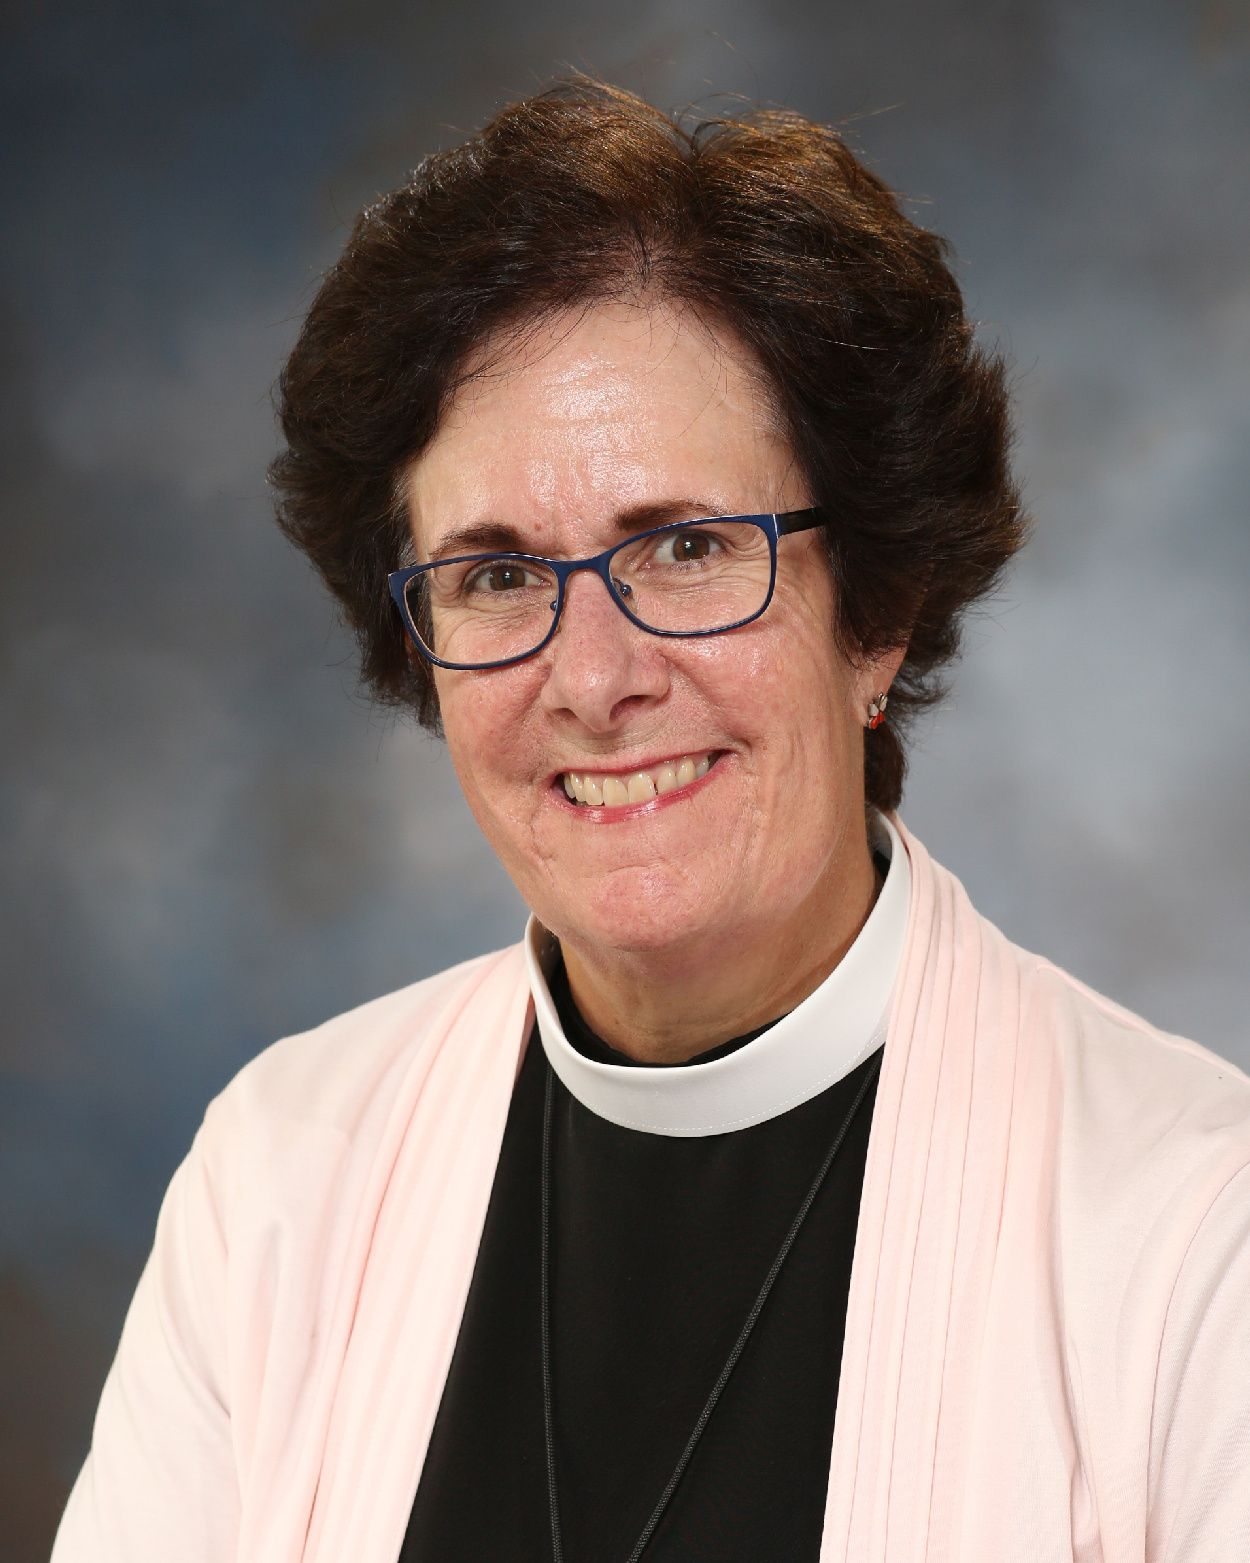 The Rev. Sally Slater, Chaplain to the Lower School